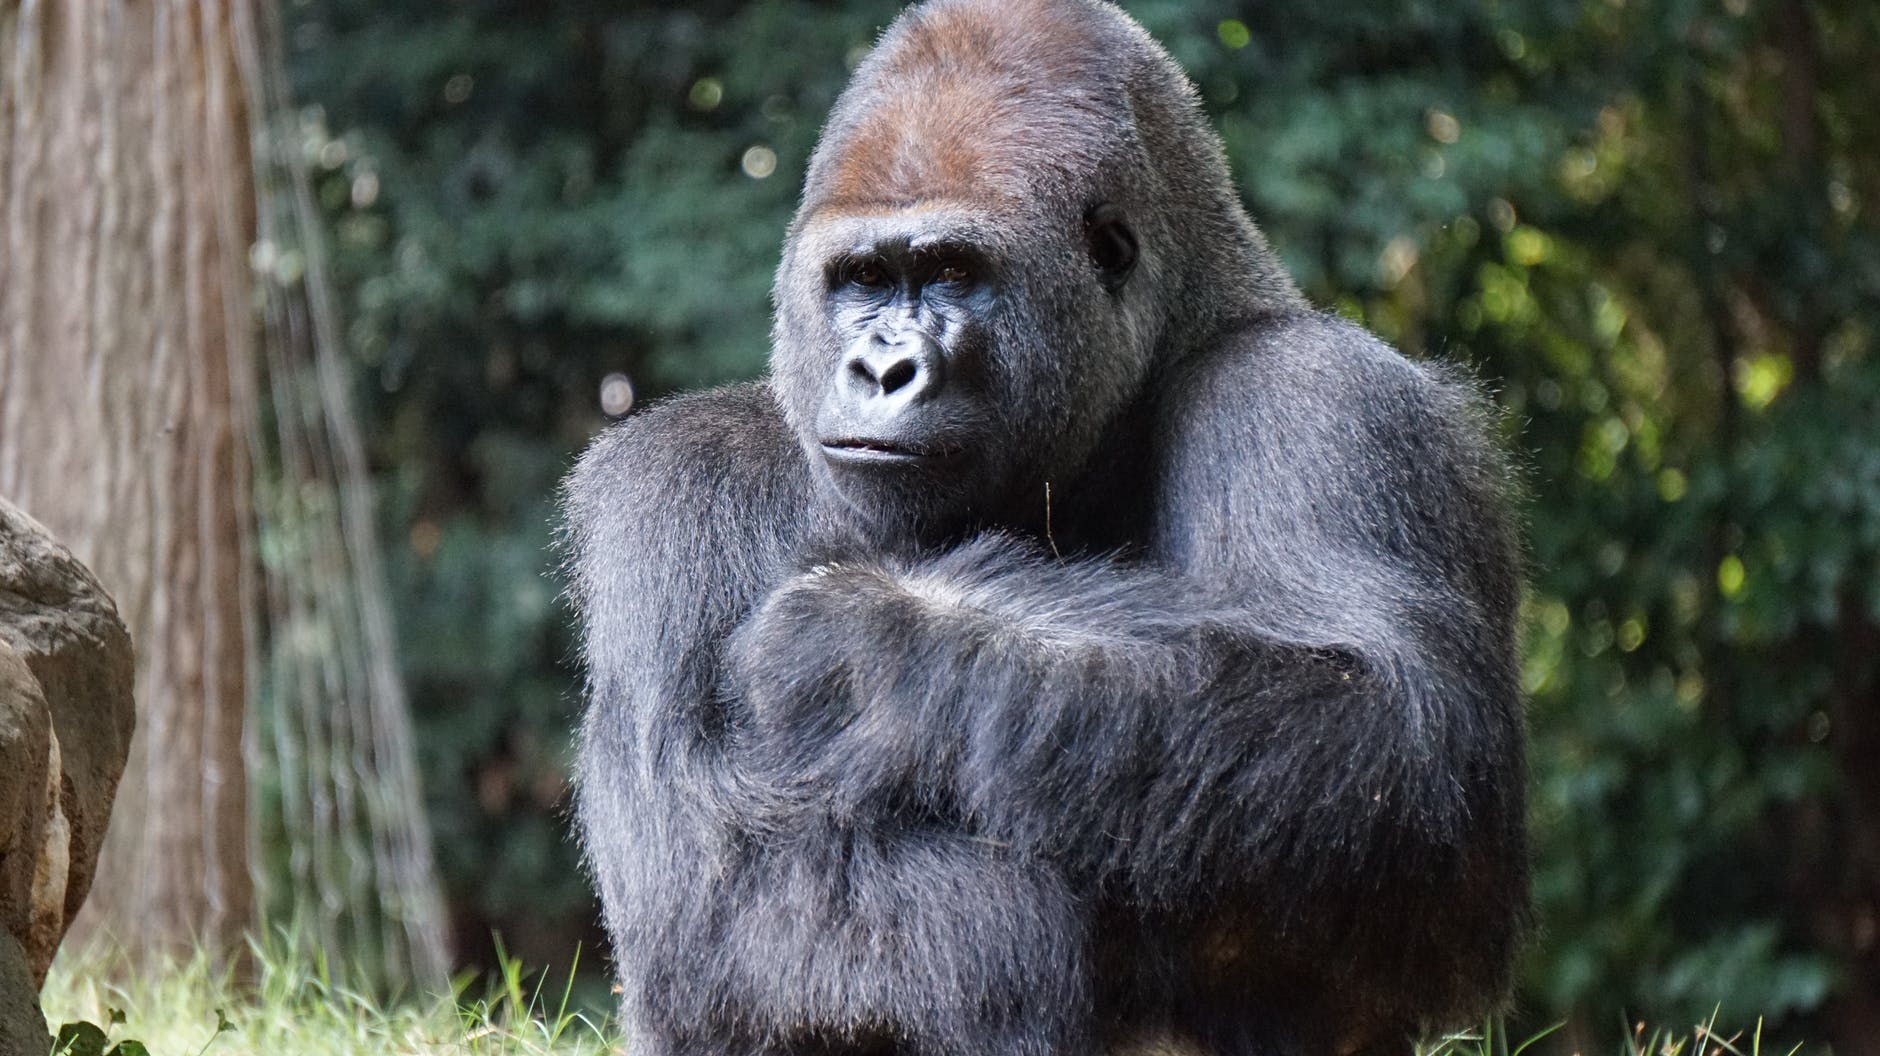 In Memory Of Harambe: 5 Facts About Gorillas You Probably Didn't Know